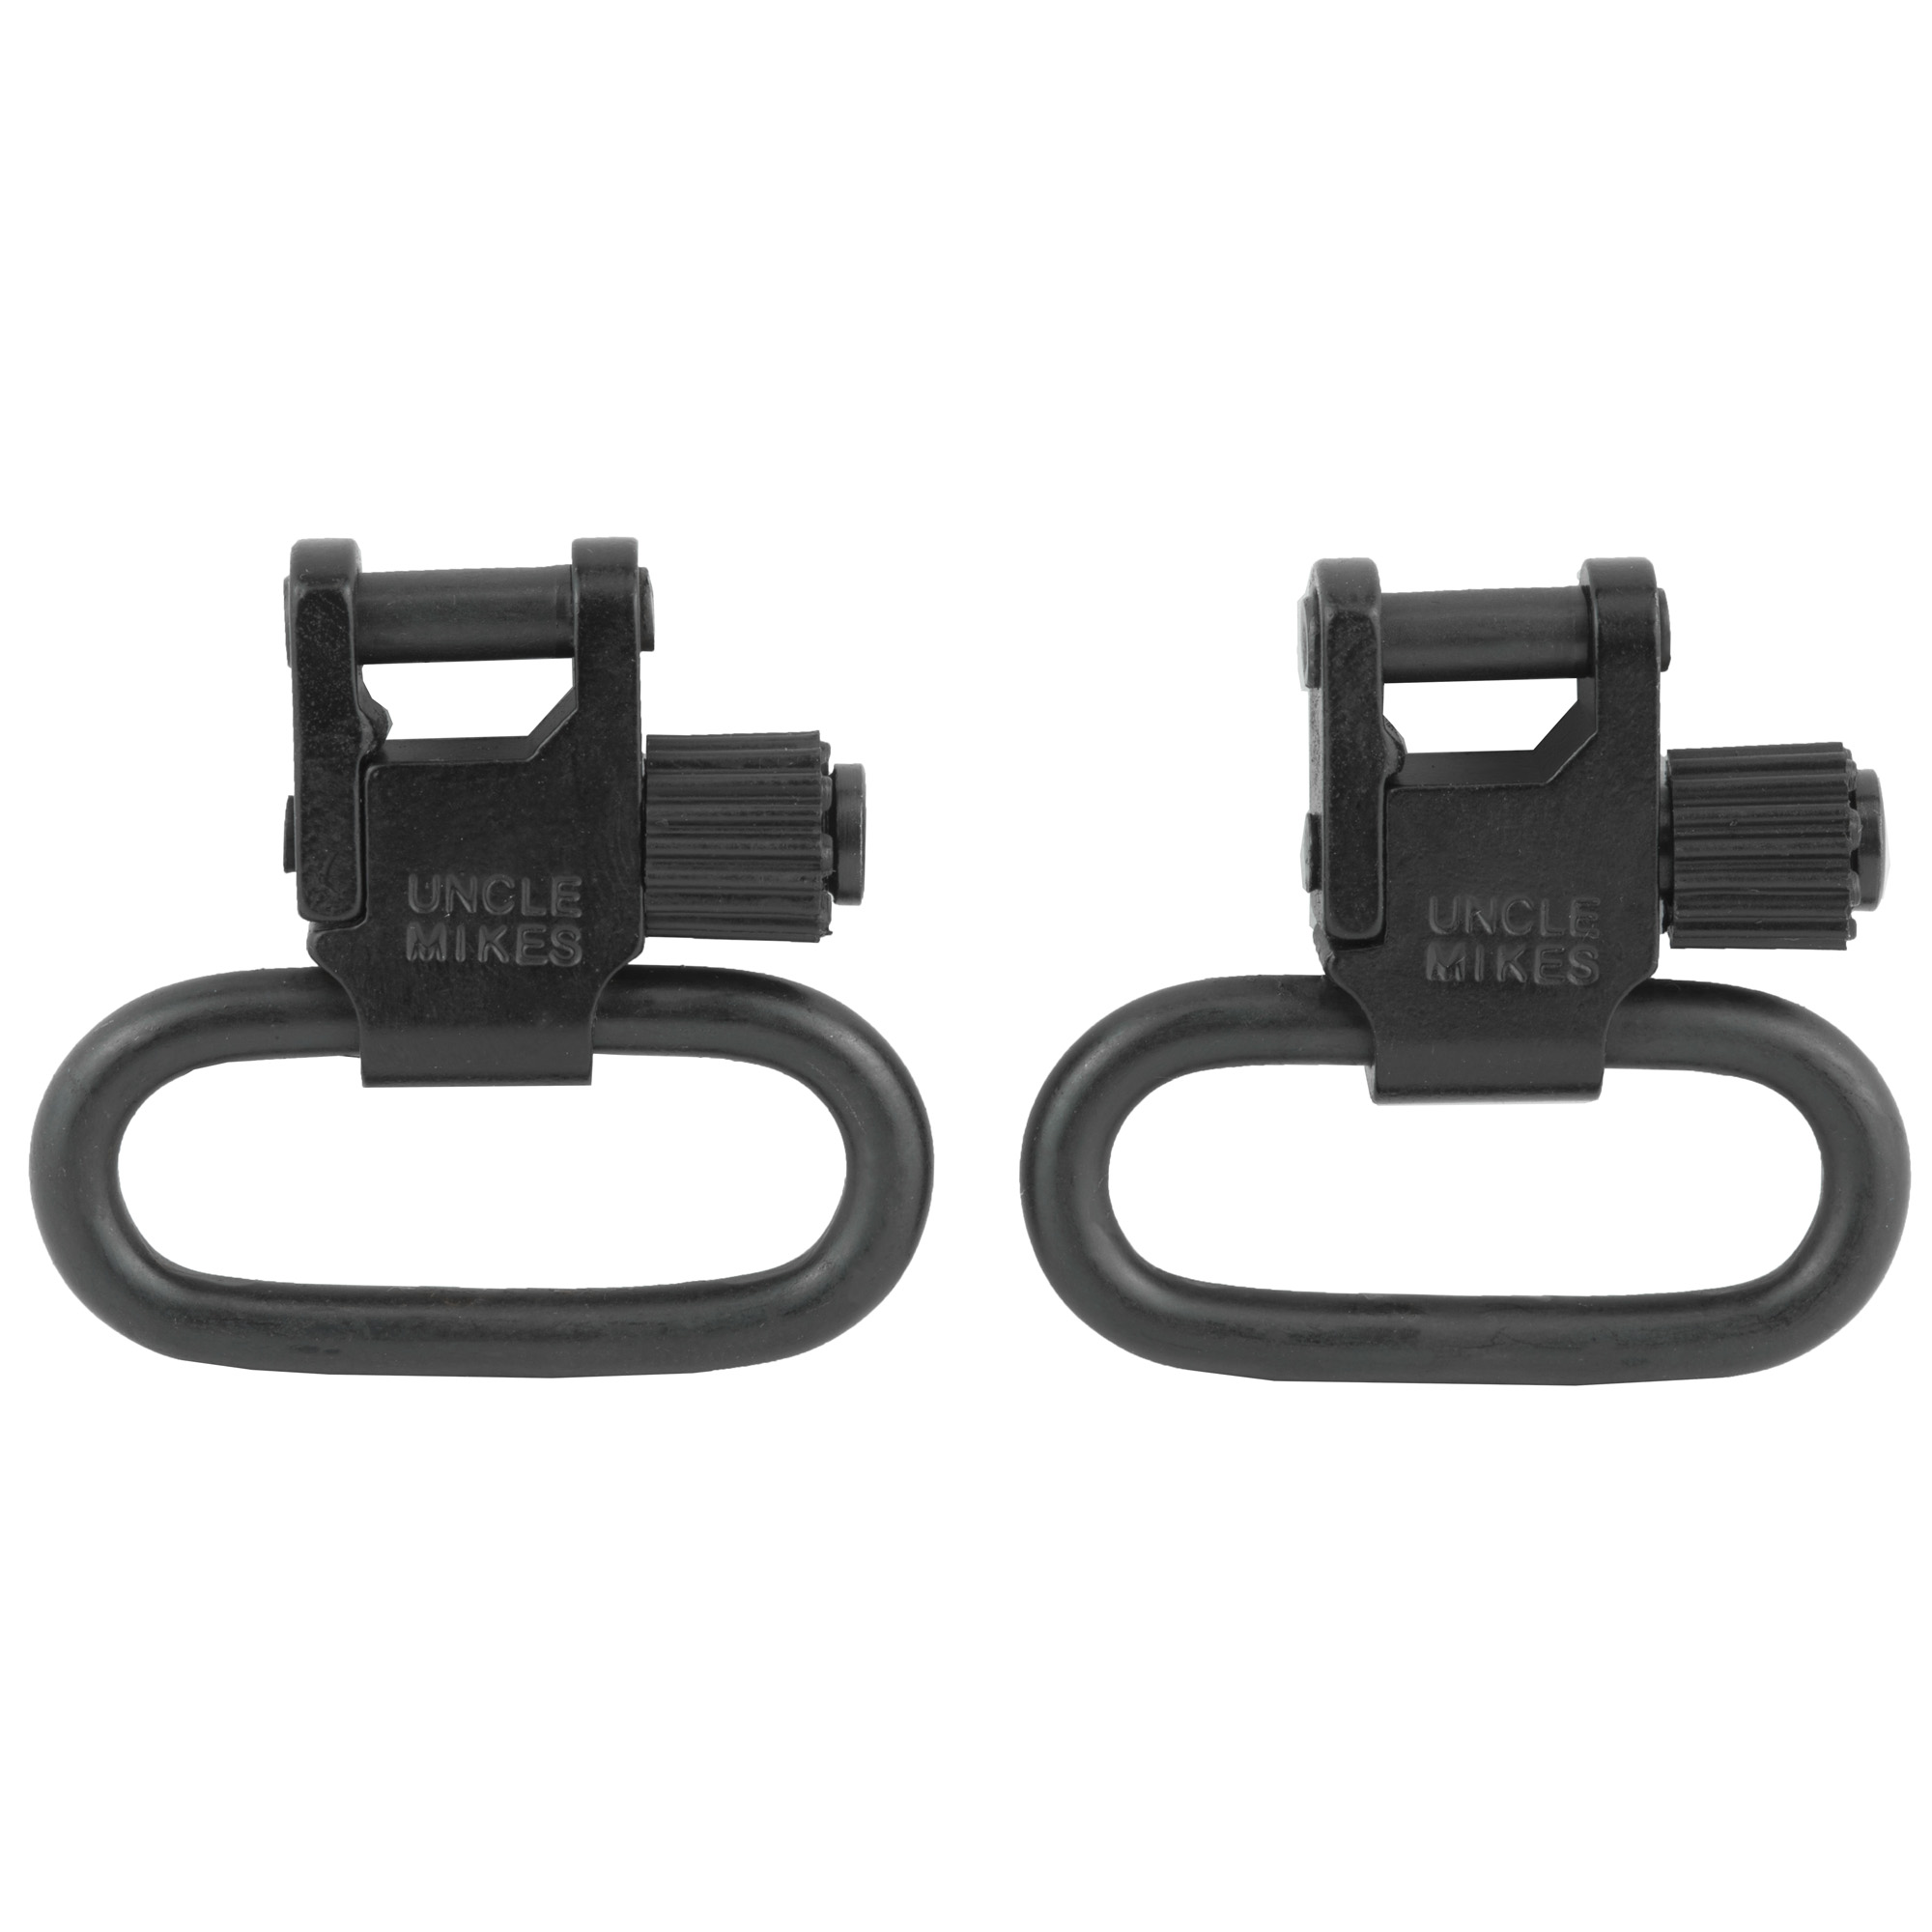 QD super sling swivel with Tri-lock made by Uncle Mike's.